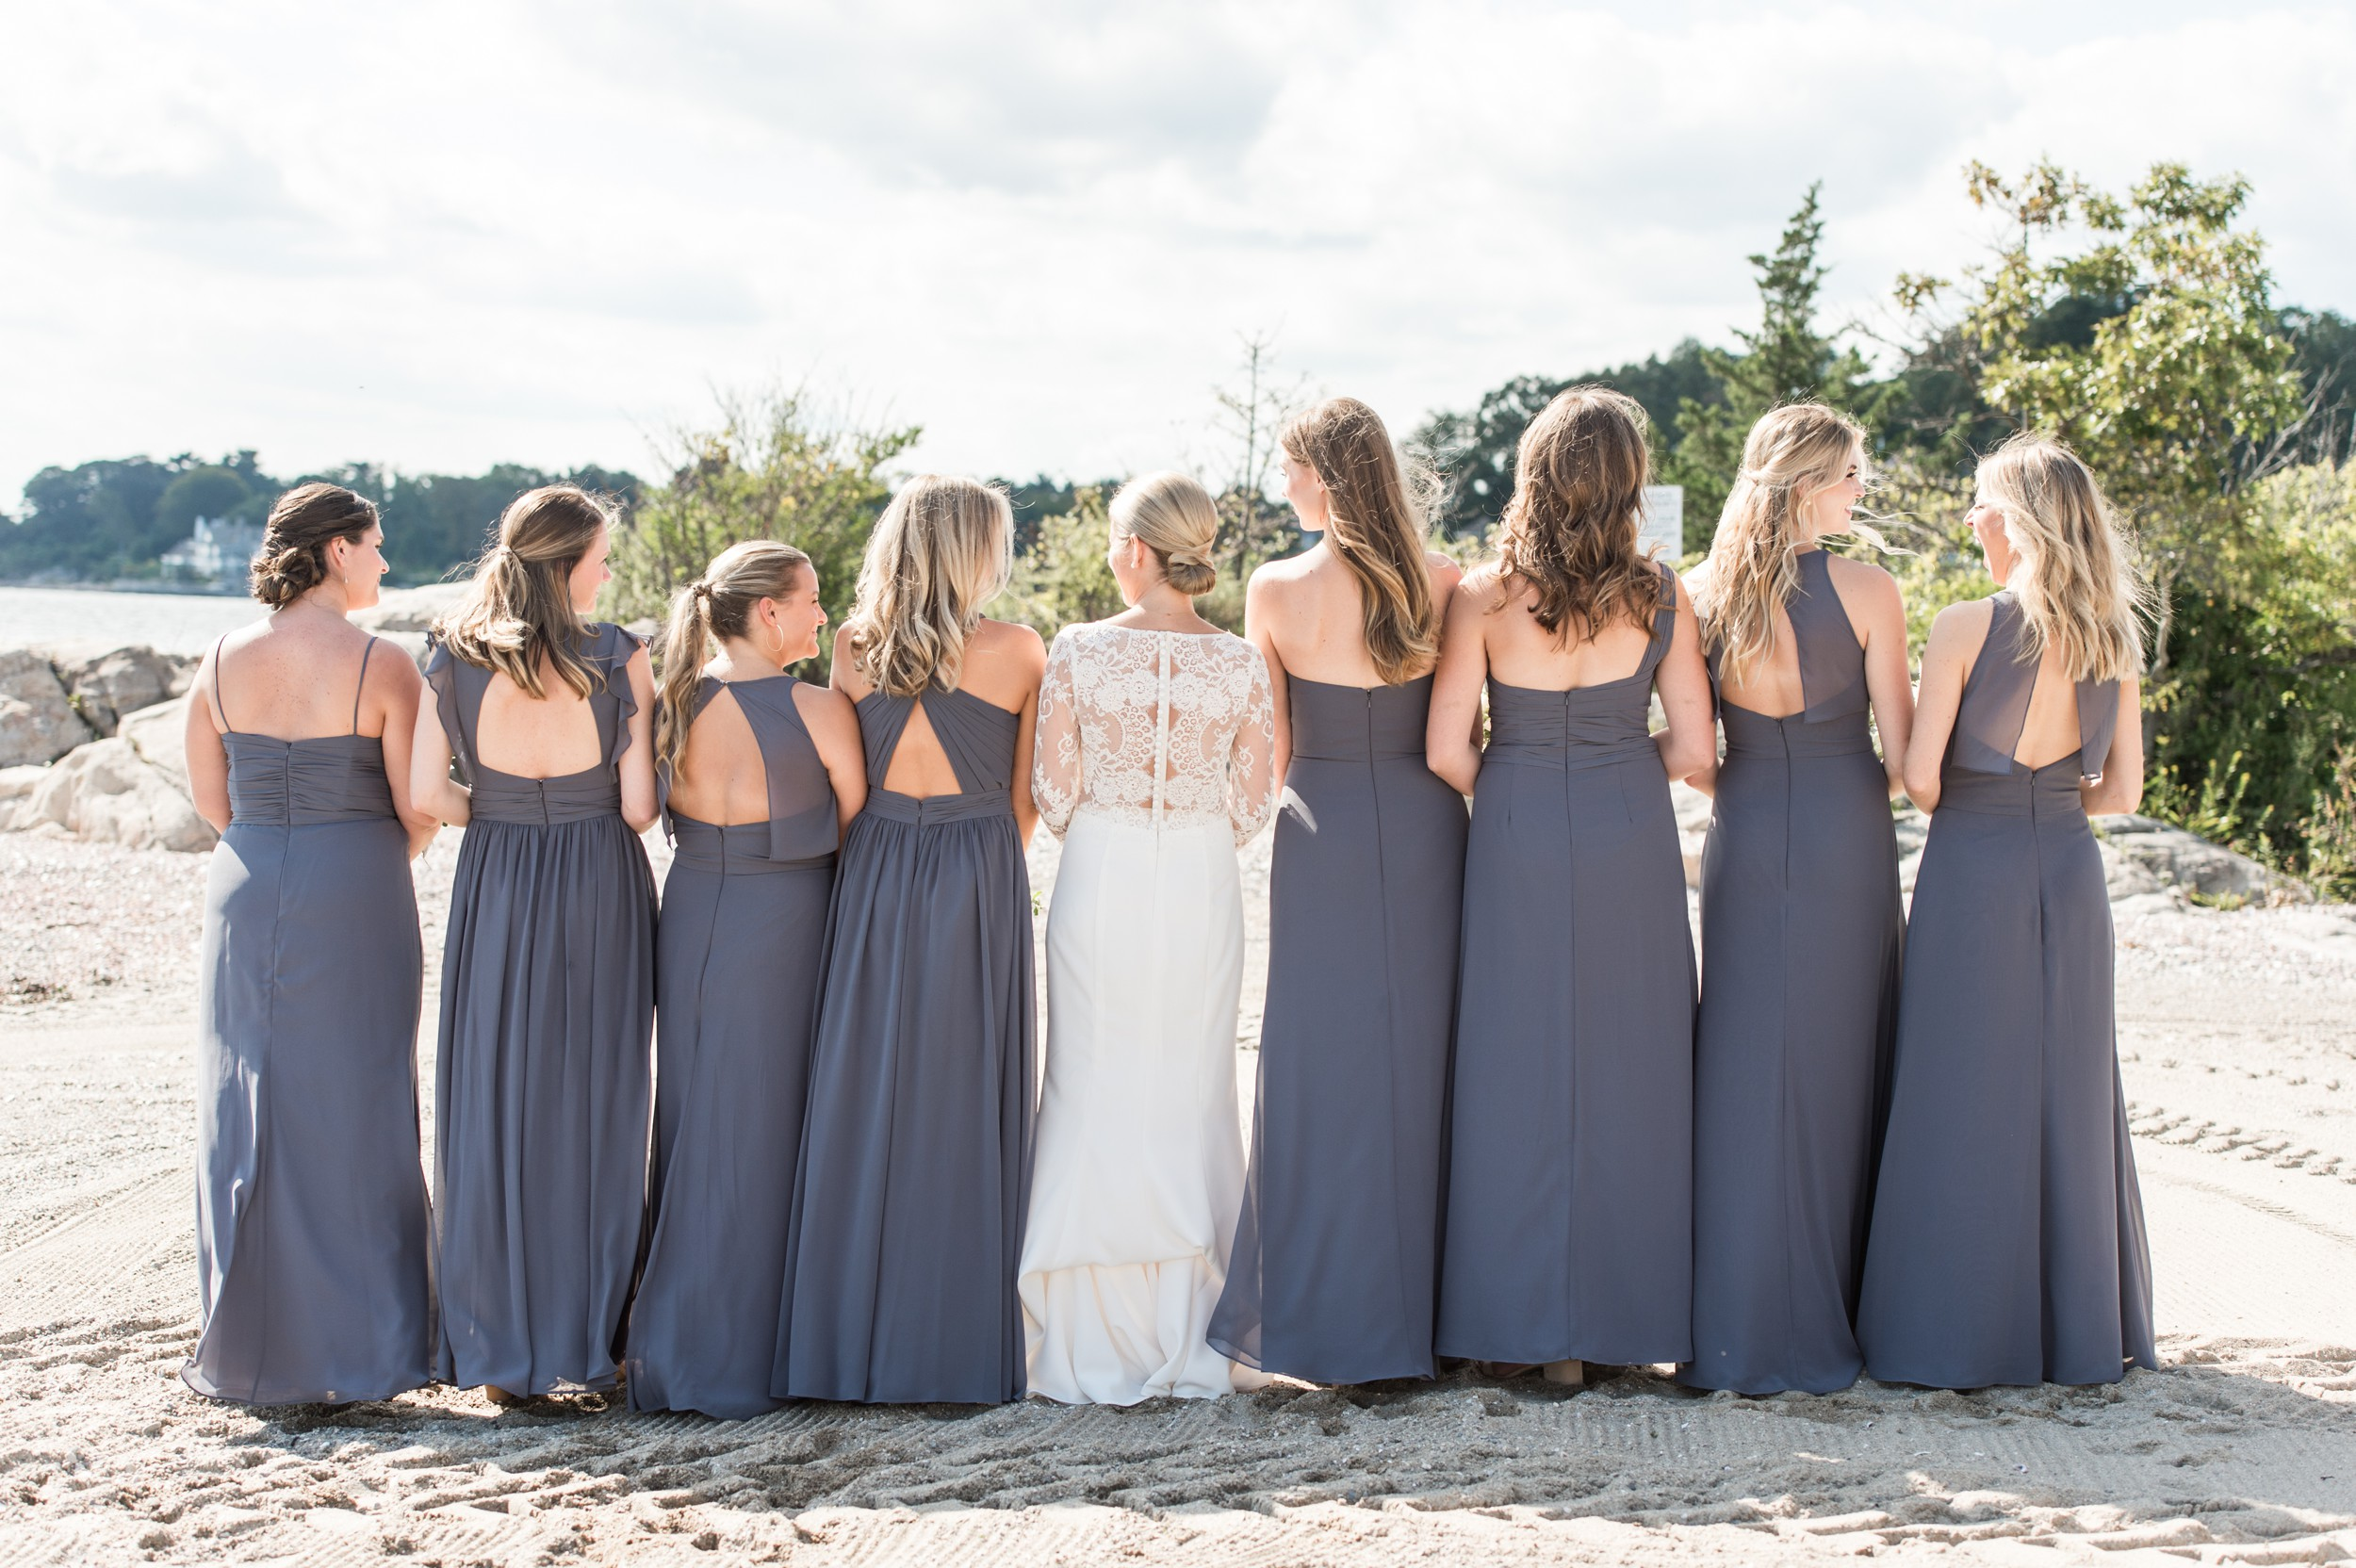 Sunny Wee Burn Beach Club Wedding Darien CT Bridal Portraits on the Beach with bridesmaids in gray Hayley Paige bridesmaids dresses and Bride in Lace Amsale Dress, Low Bun, and White Florals